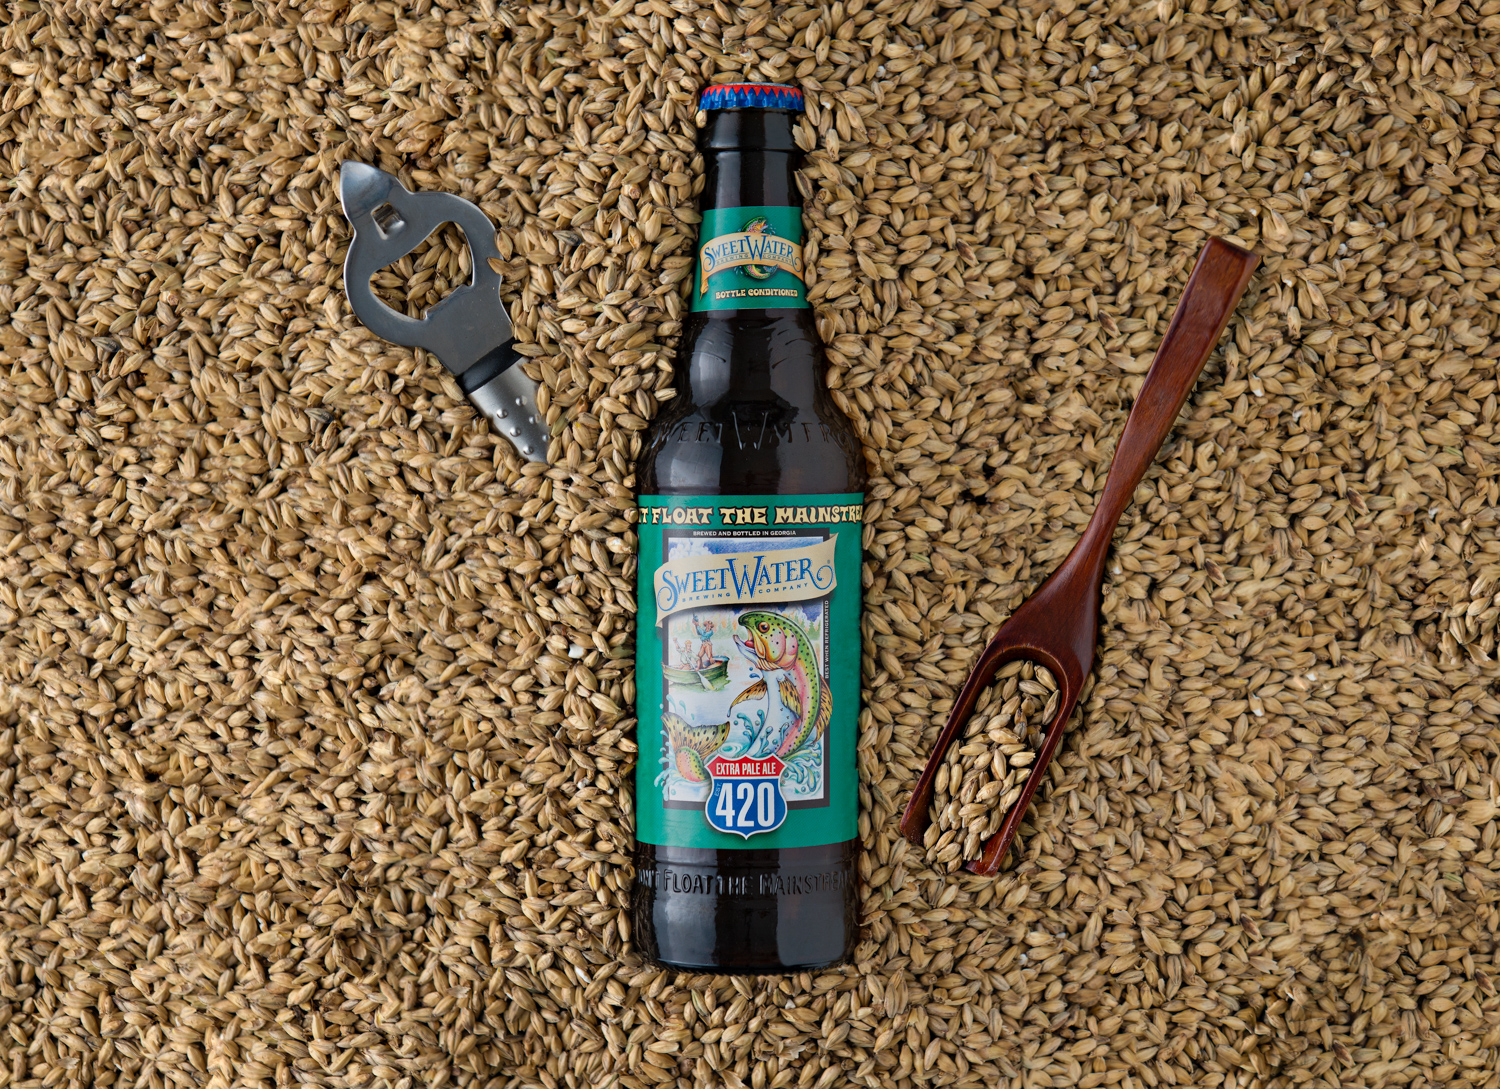 SweetWater Brew - 420 Extra Pale Ale in 2-row (brewer's malt)